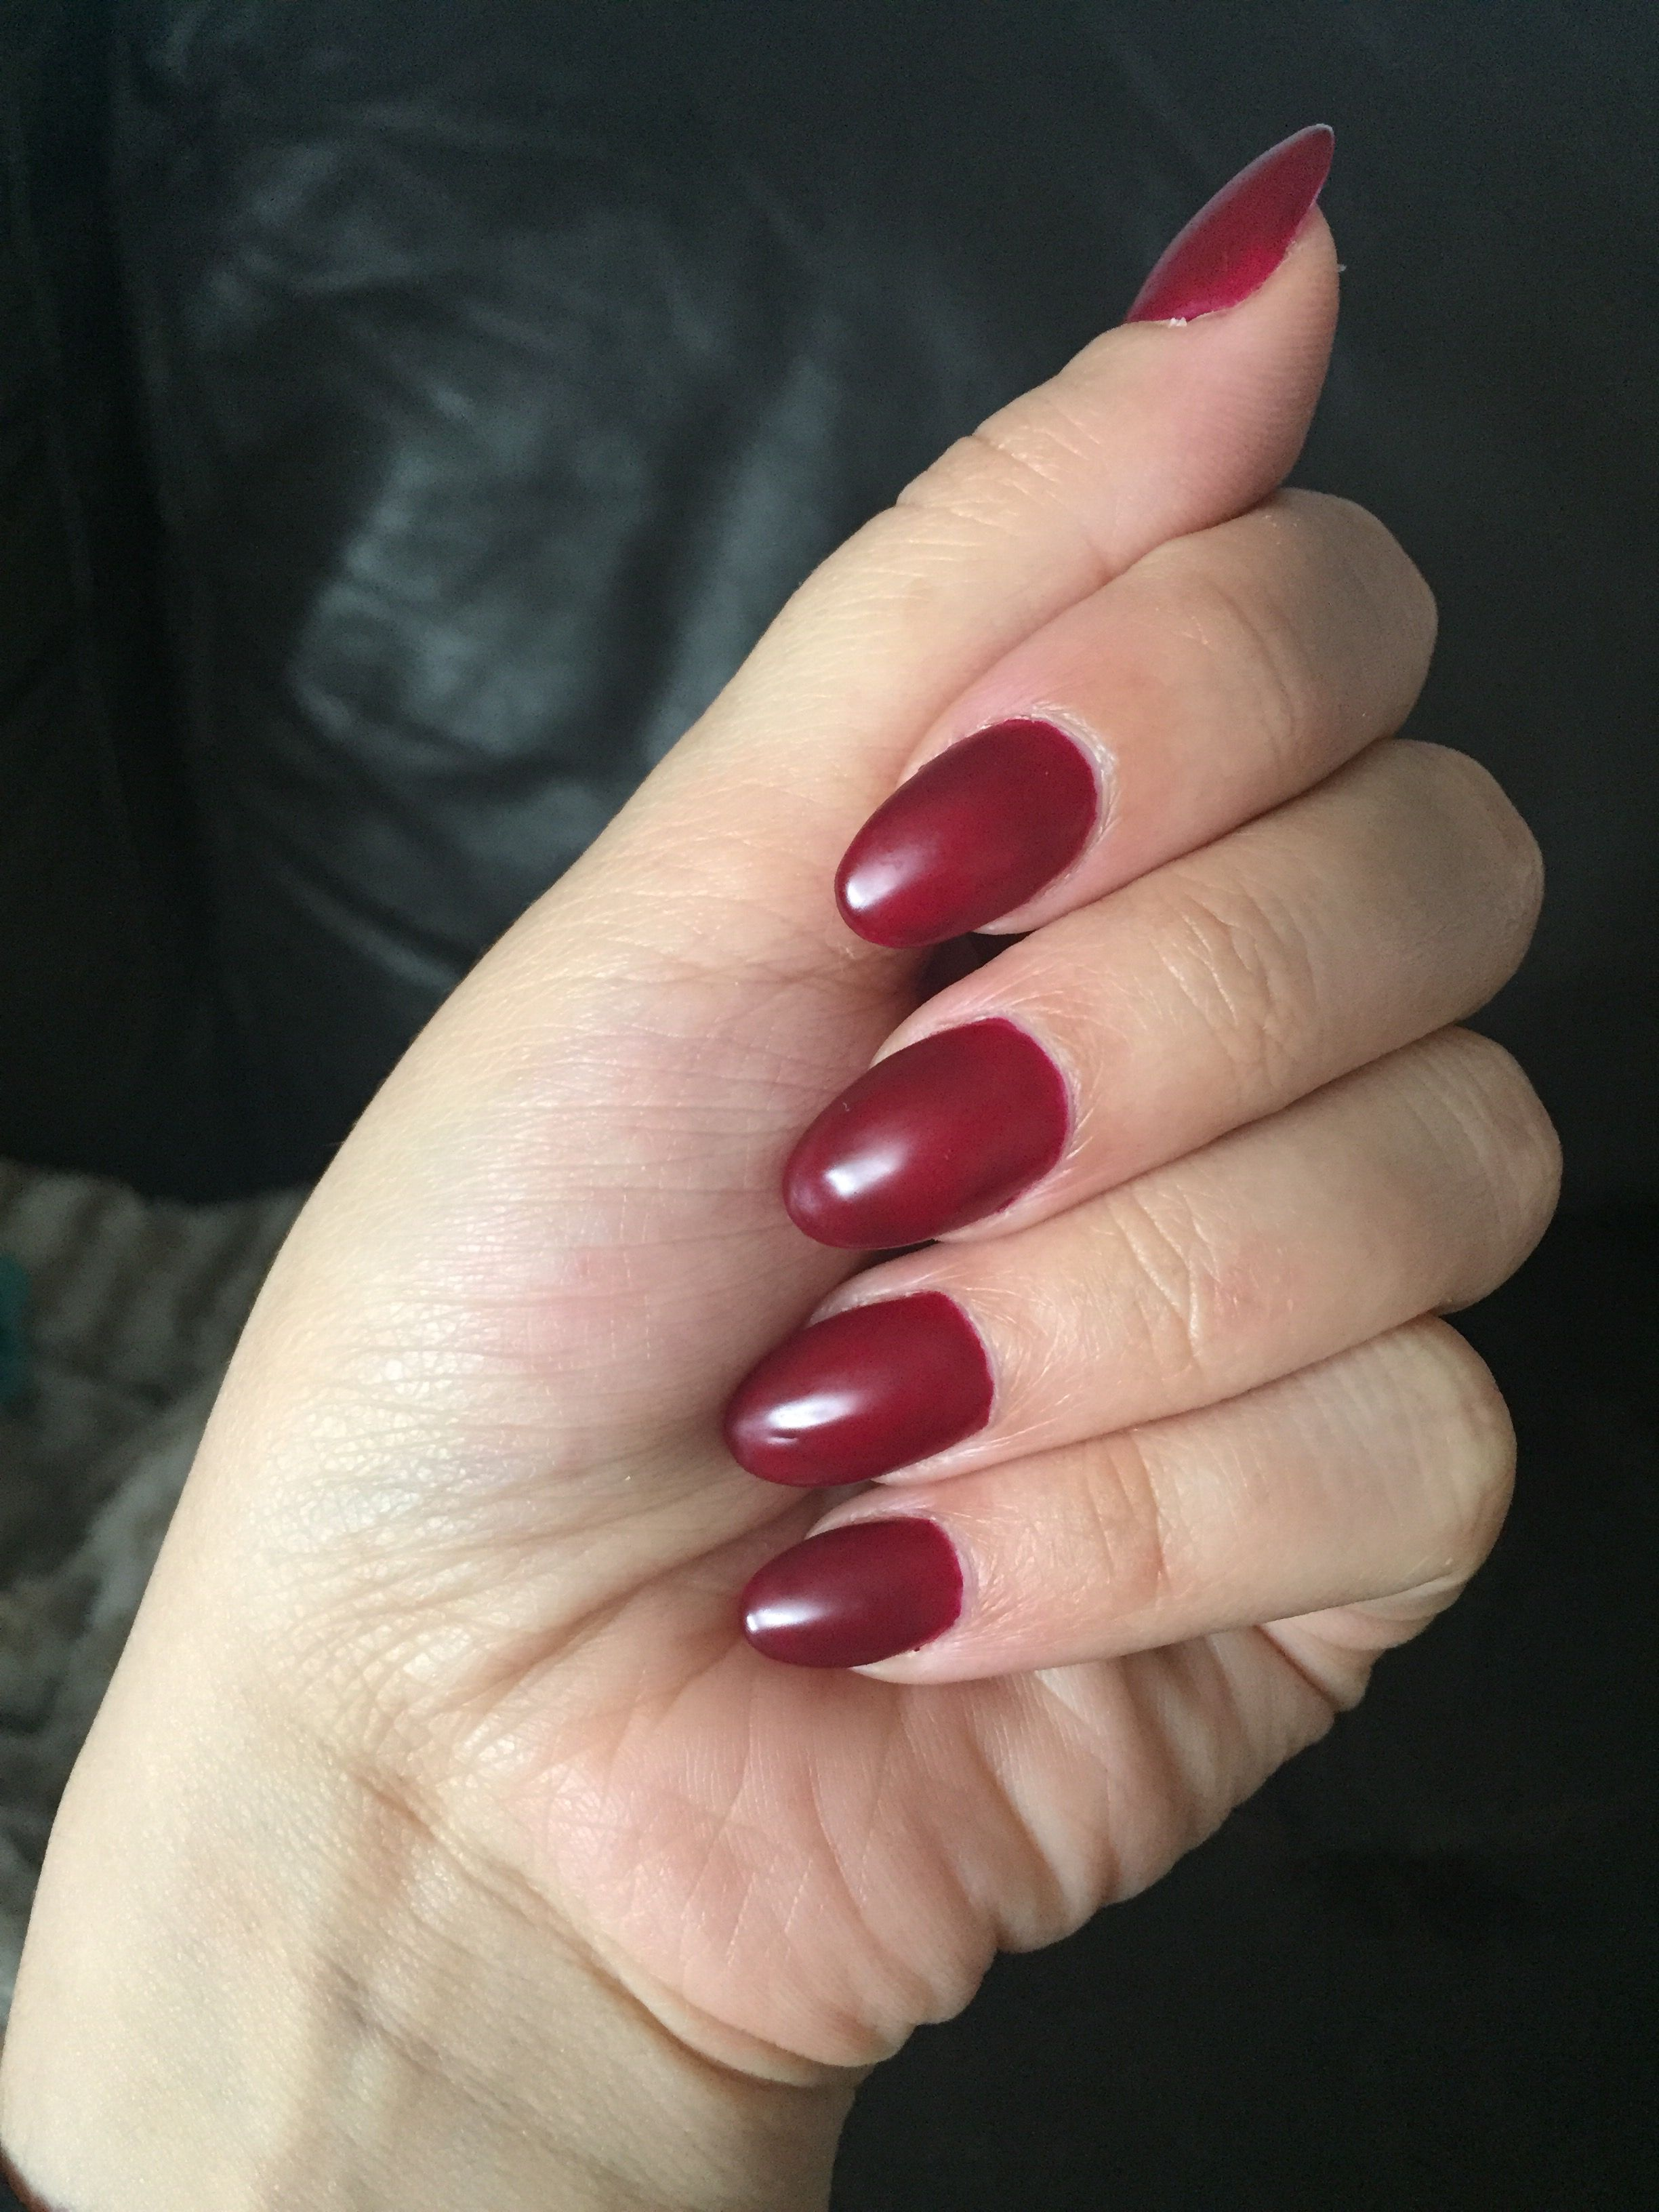 Daisy Duo DND Dark Scarlet Gel Polish | DND Daisy gel color ...